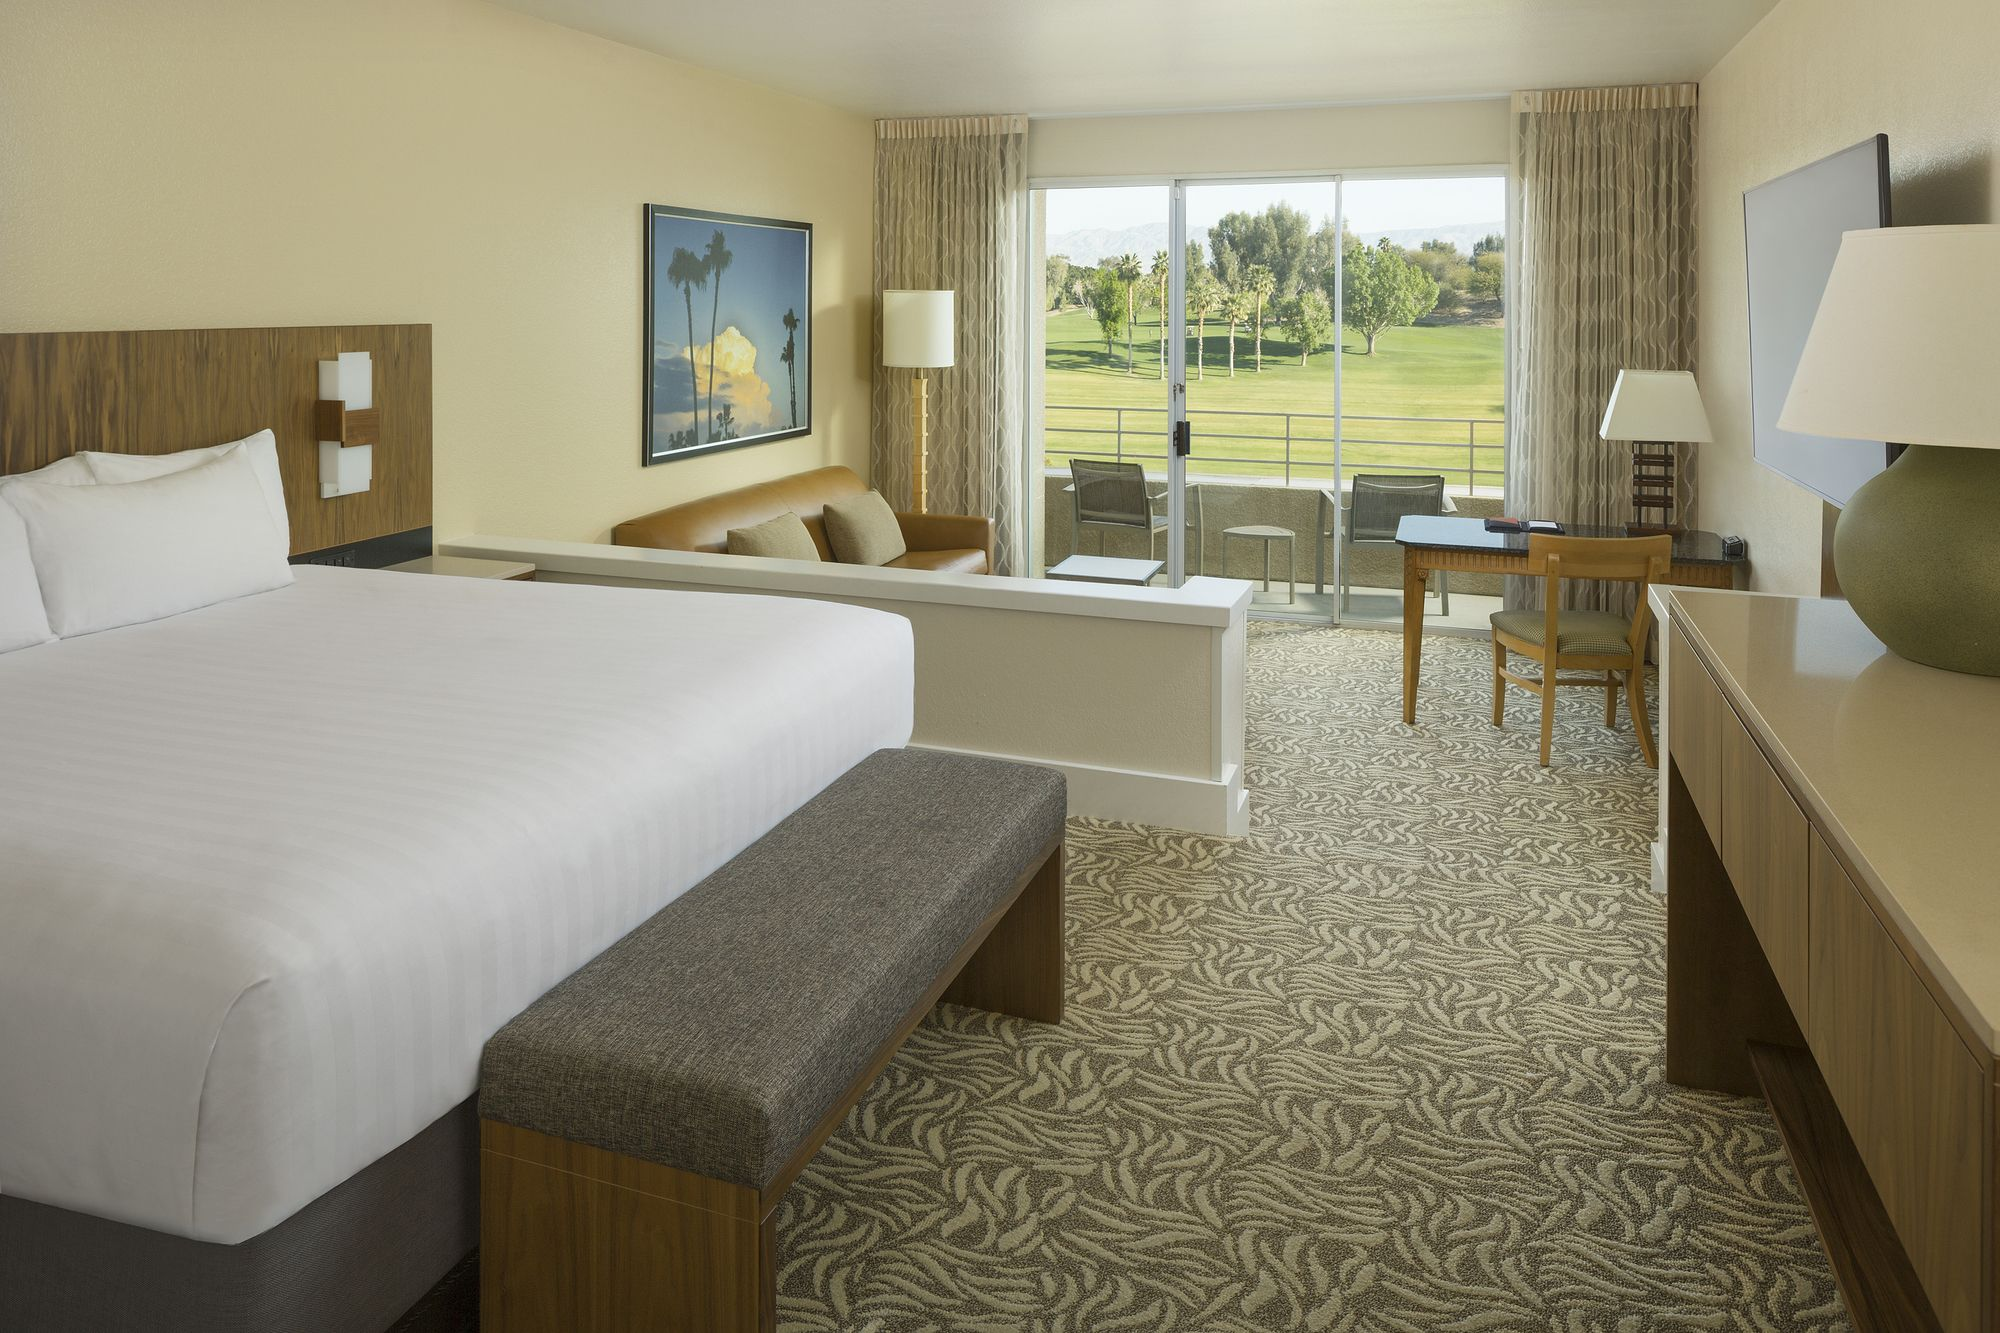 indian wells hotel coupons for indian wells, california